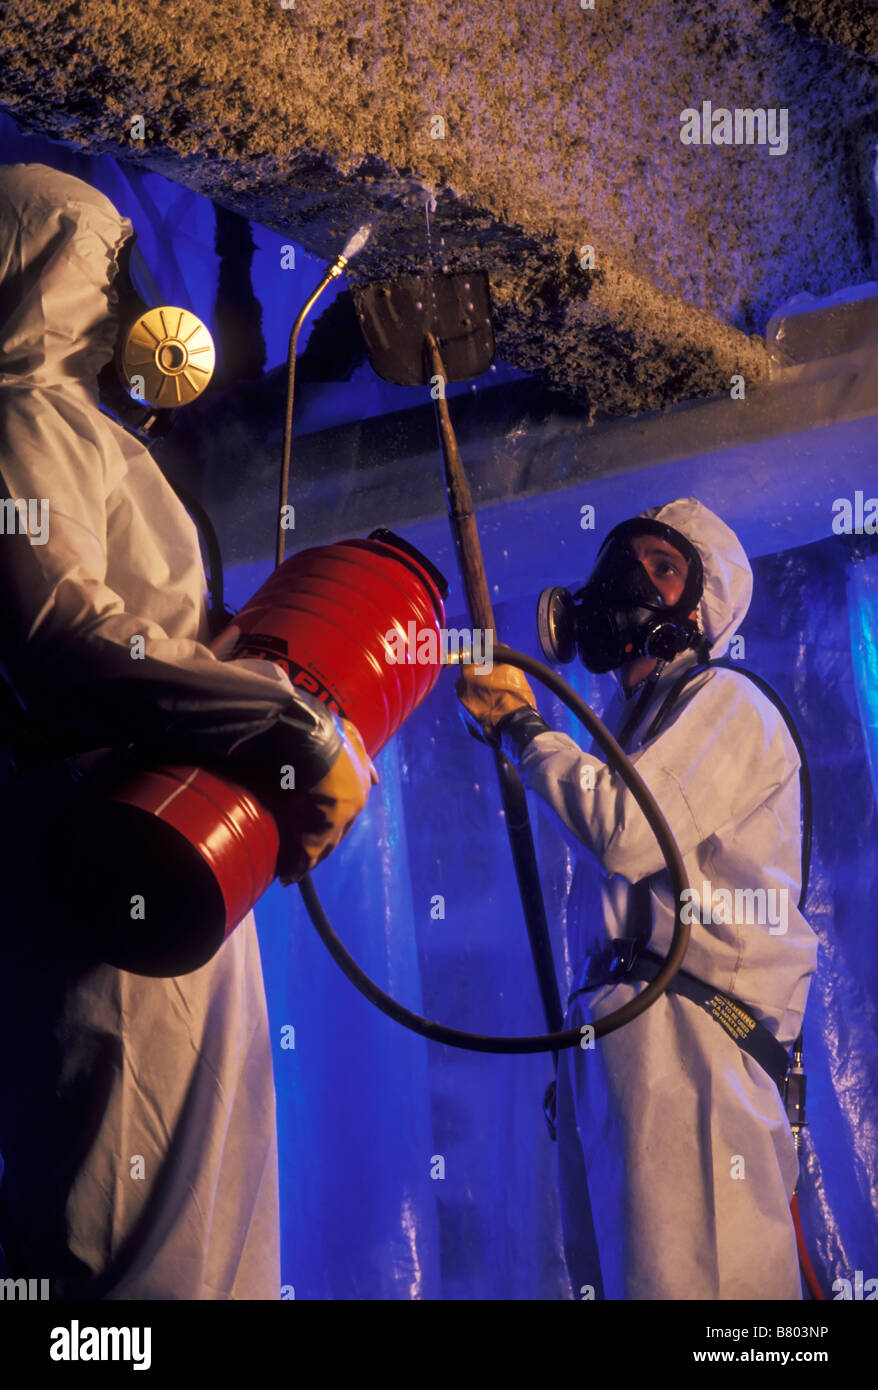 Asbestos insulation being removed by worker. Canada. - Stock Image